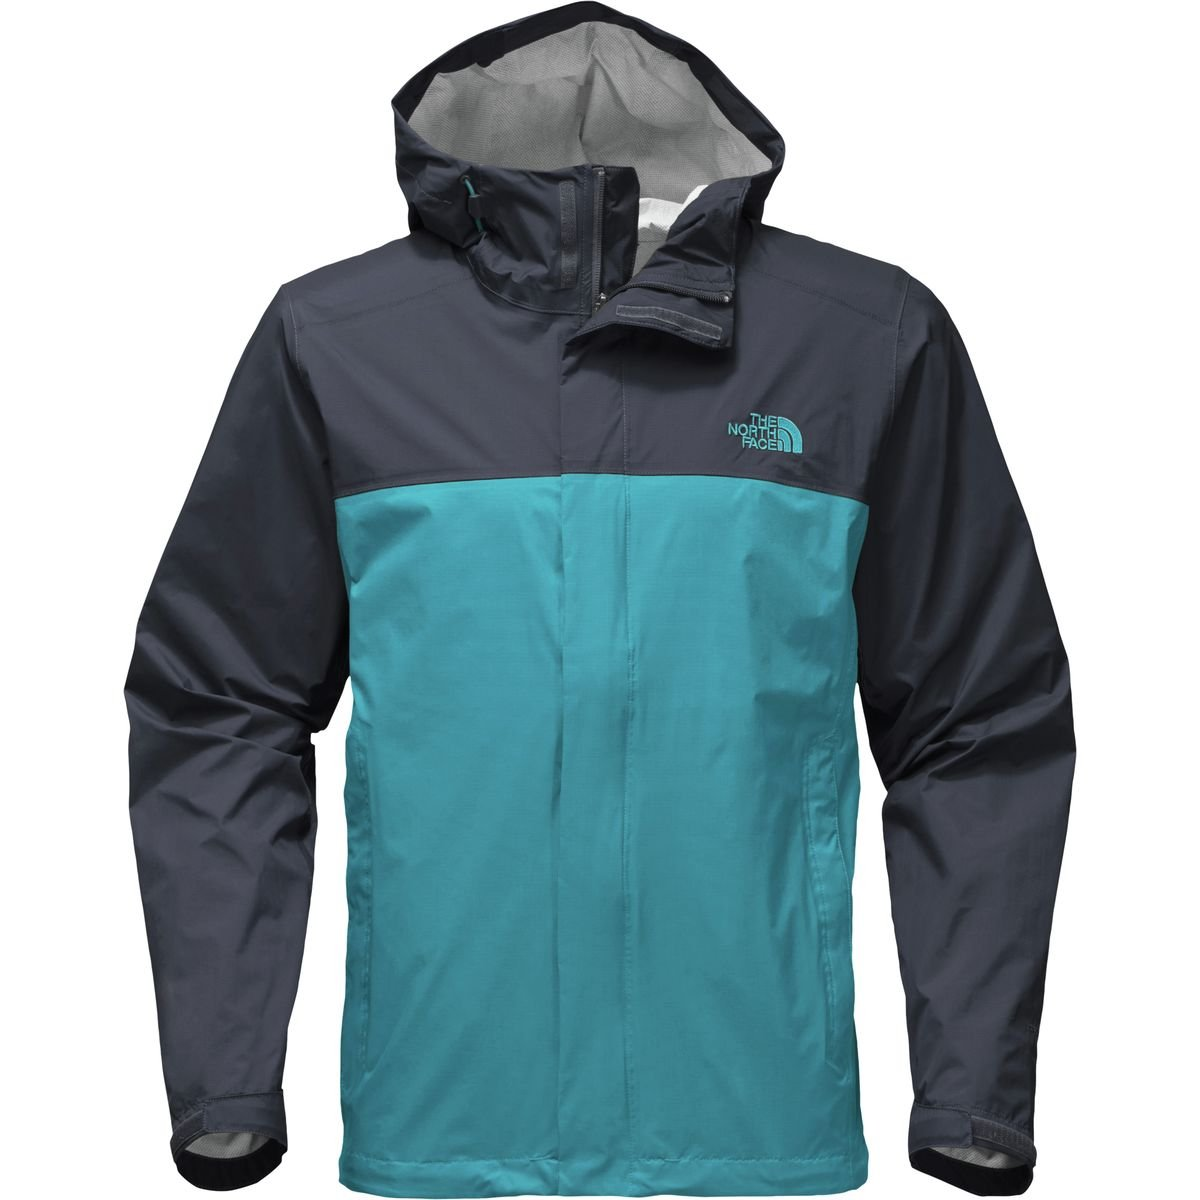 (ザノースフェイス) The North Face Resolve 2 ジャケット メンズ B01N2L9NXA 3L|Brilliant Blue/Urban Navy Brilliant Blue/Urban Navy 3L